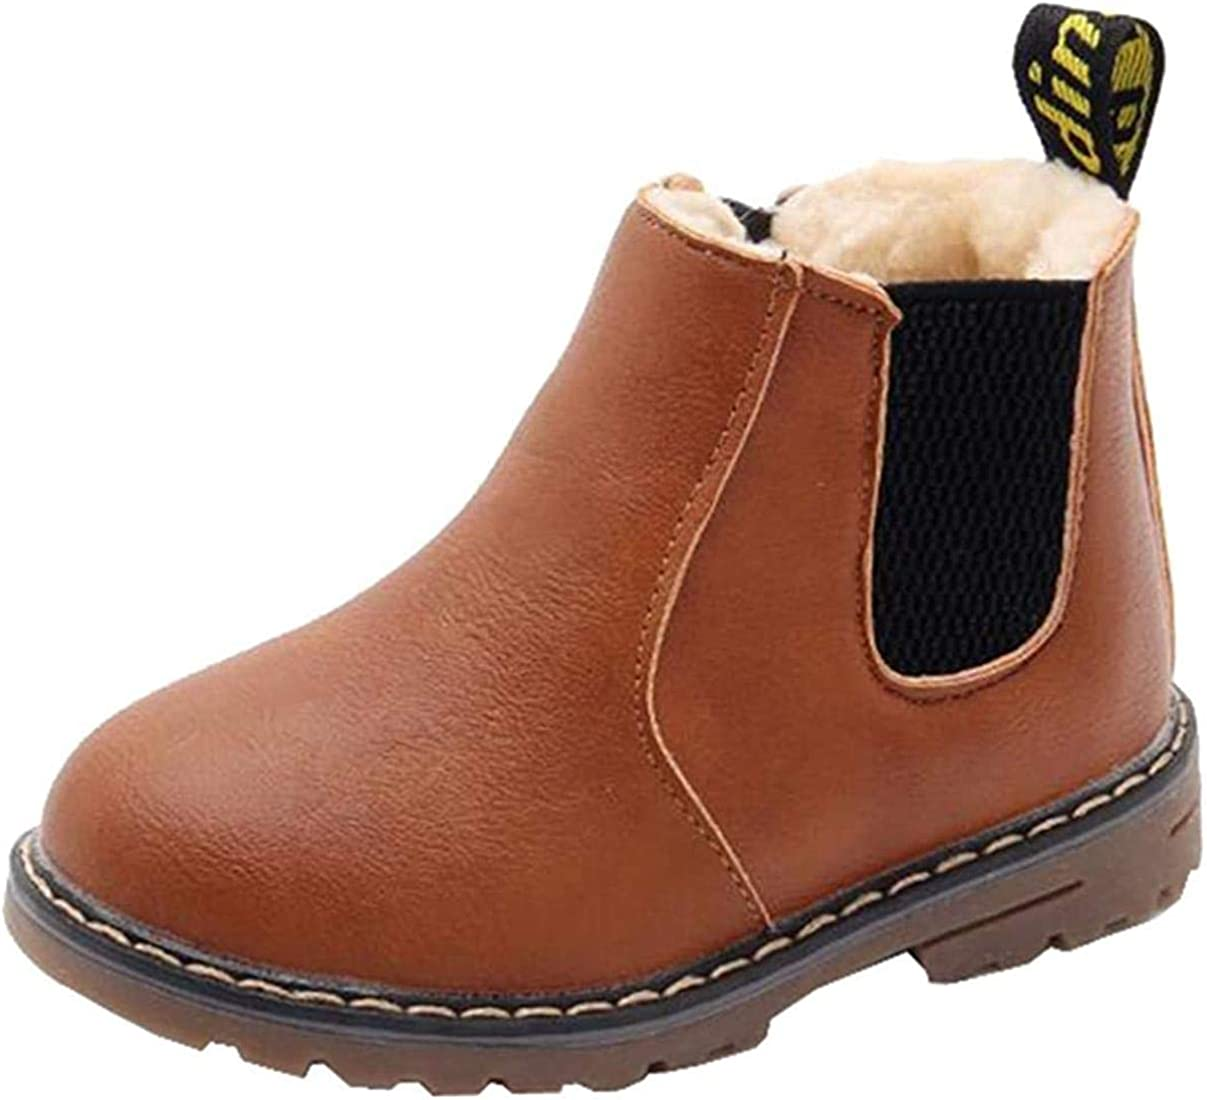 girls casual boots